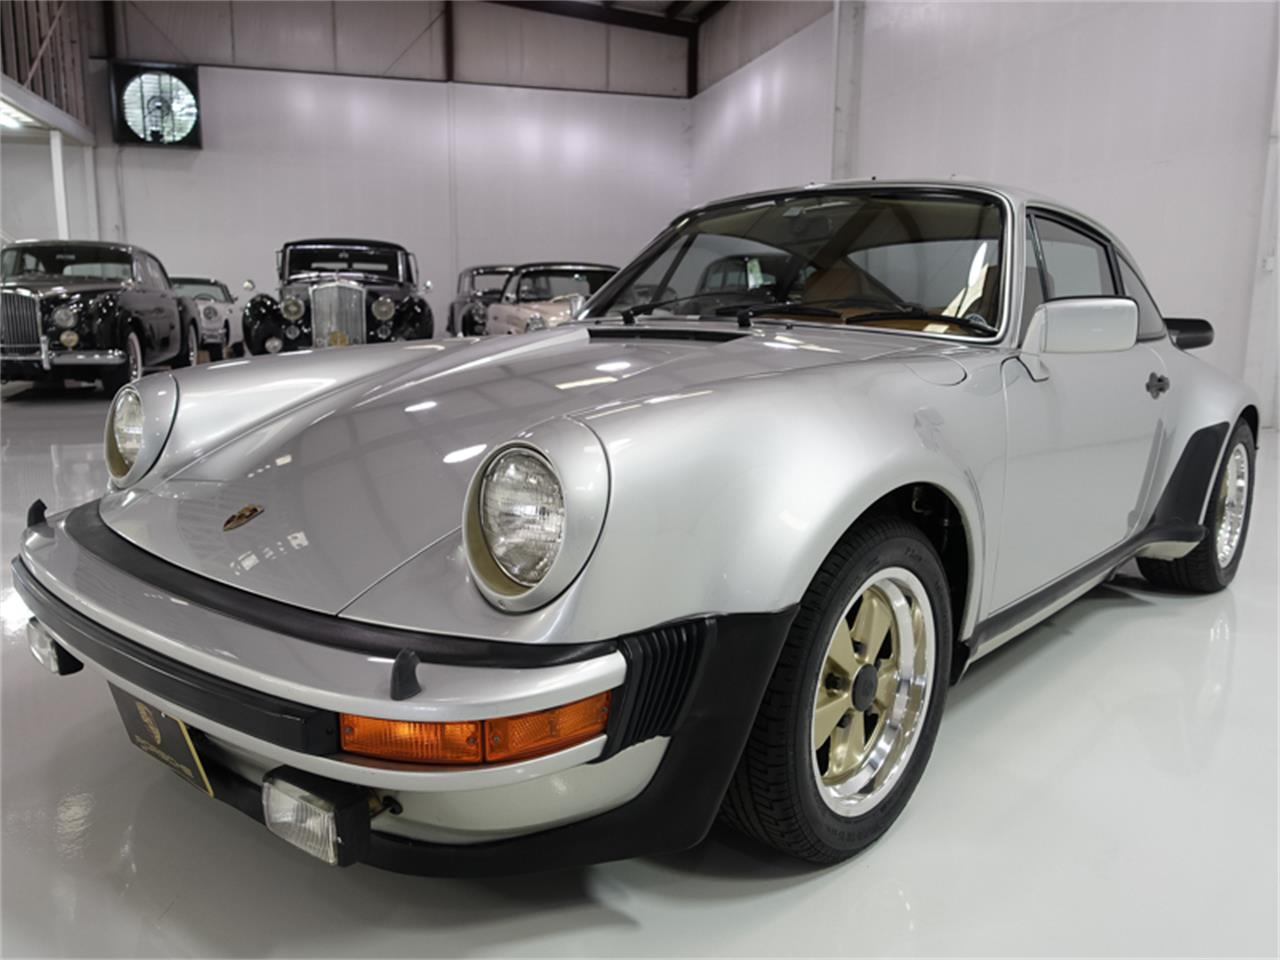 Large Picture of 1976 Porsche 930 Turbo located in St Ann Missouri Offered by Daniel Schmitt & Co. - FXKC